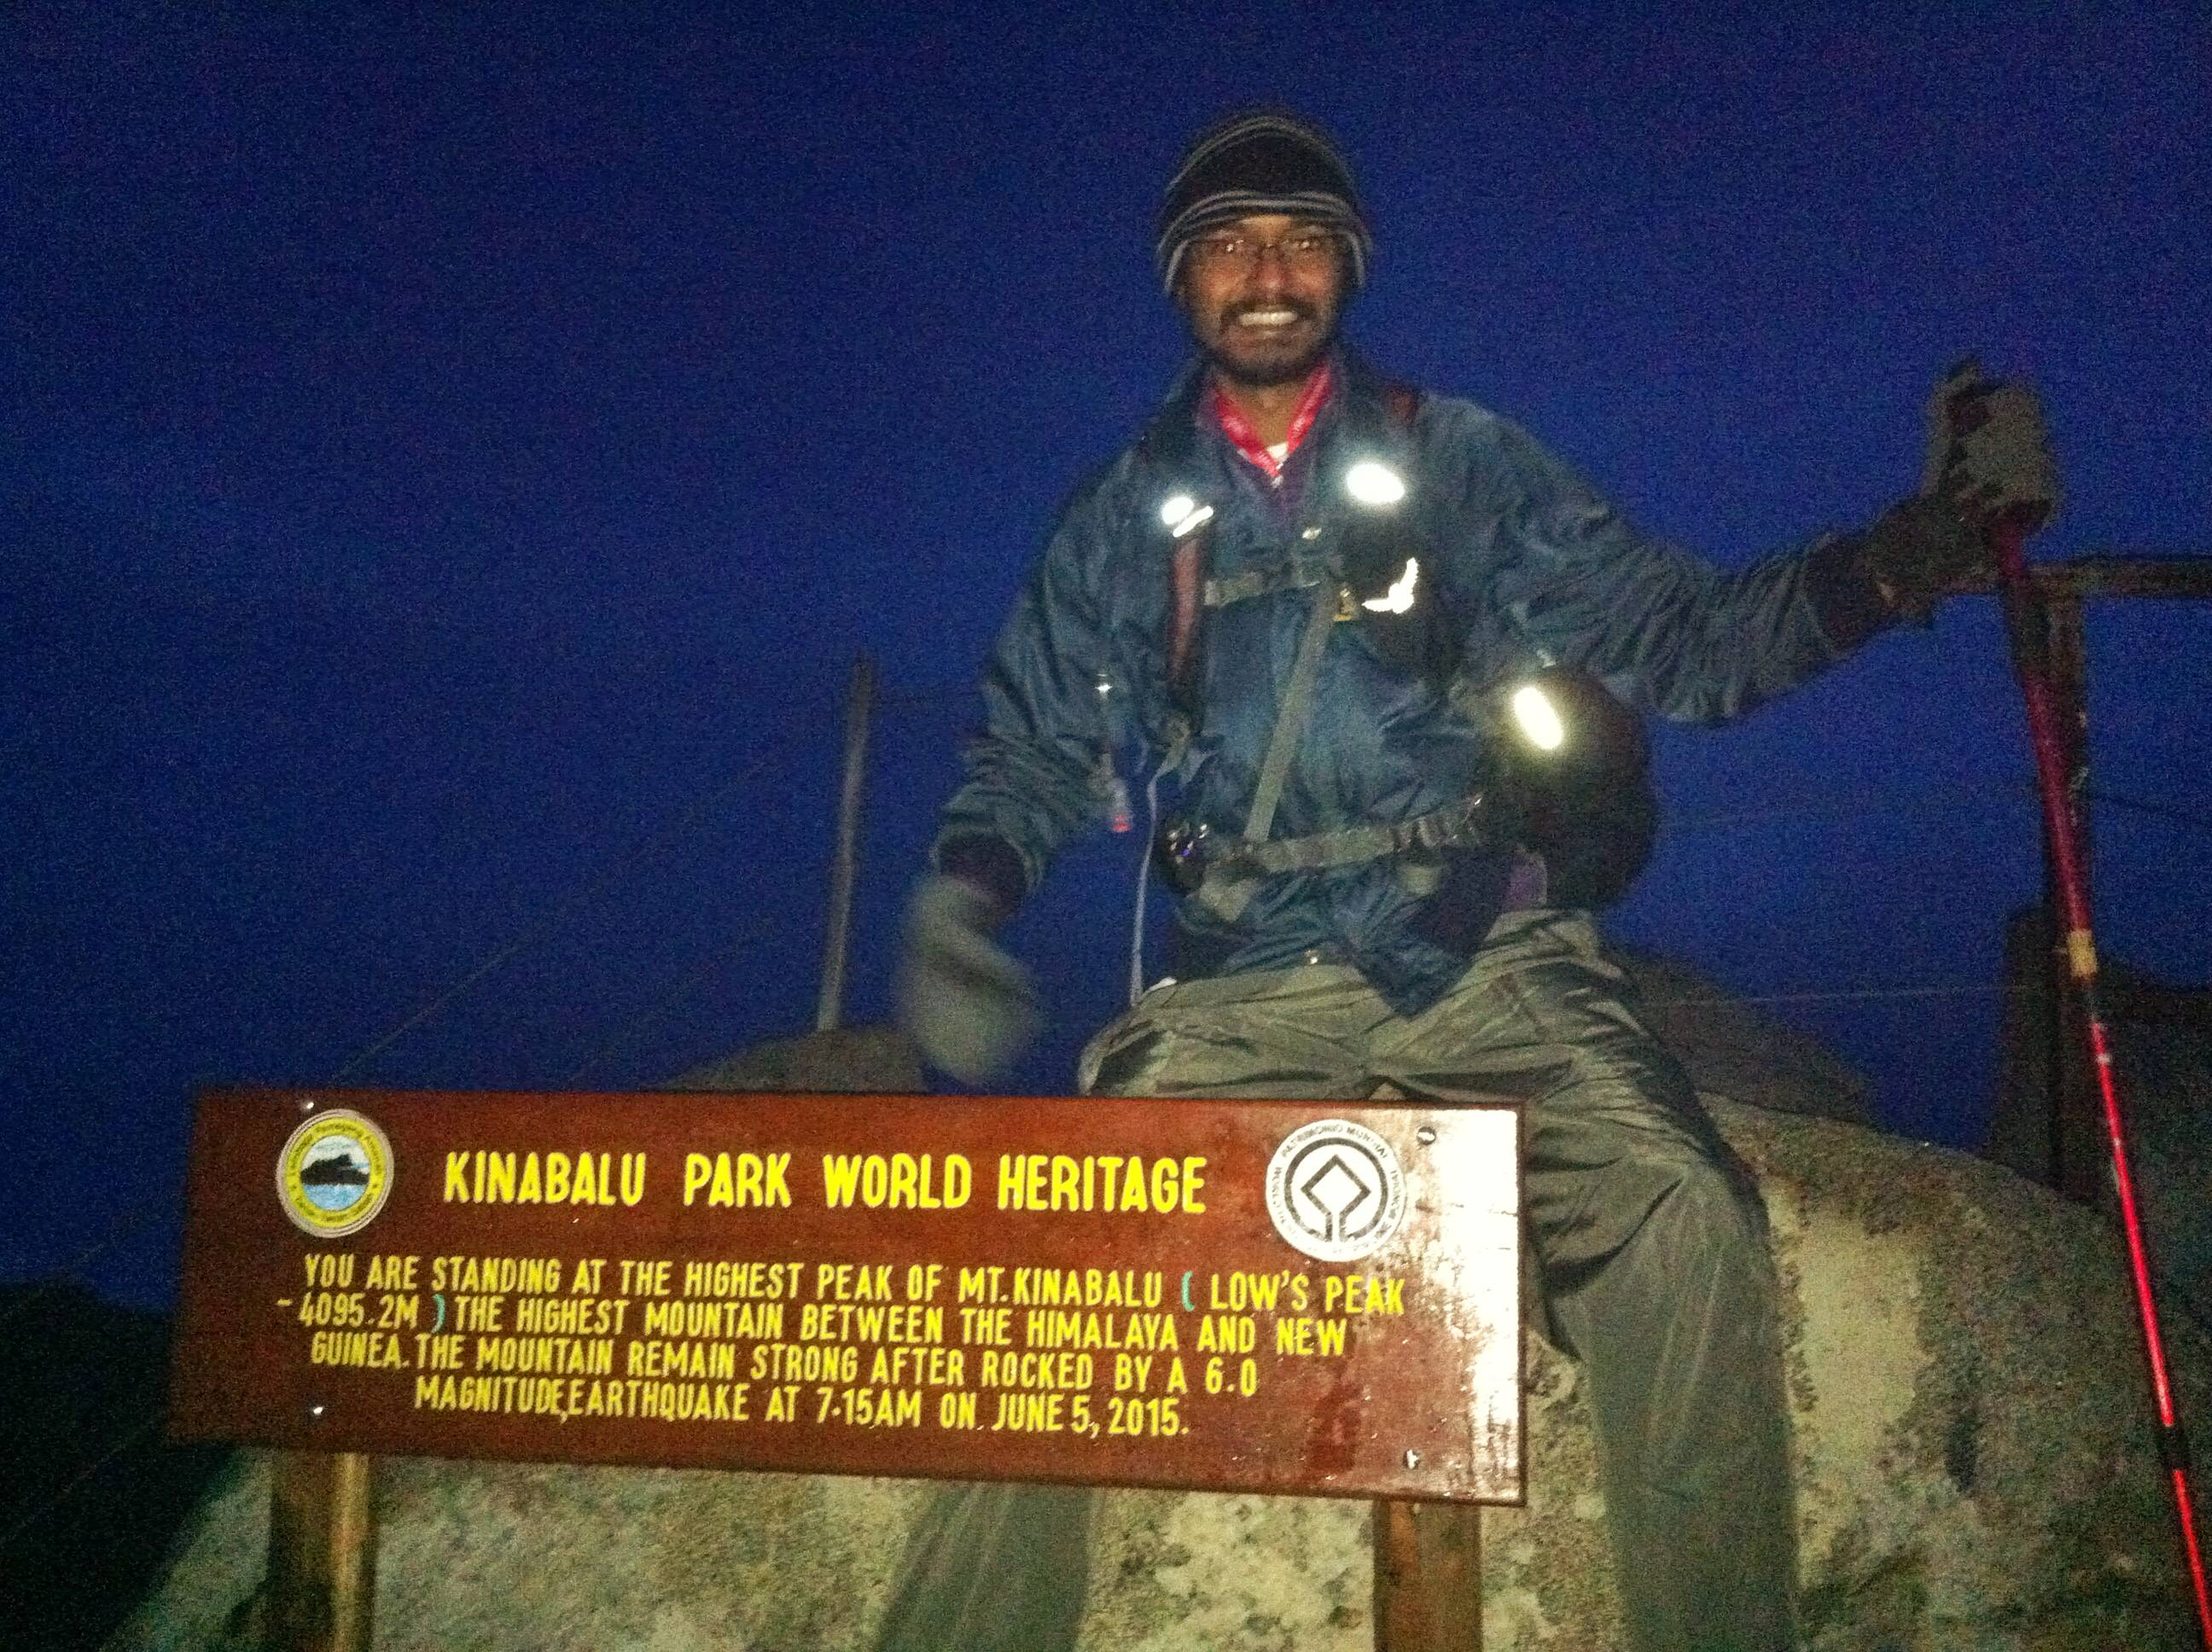 20 December 2015, right after he reached the peak of Mount Kinabalu